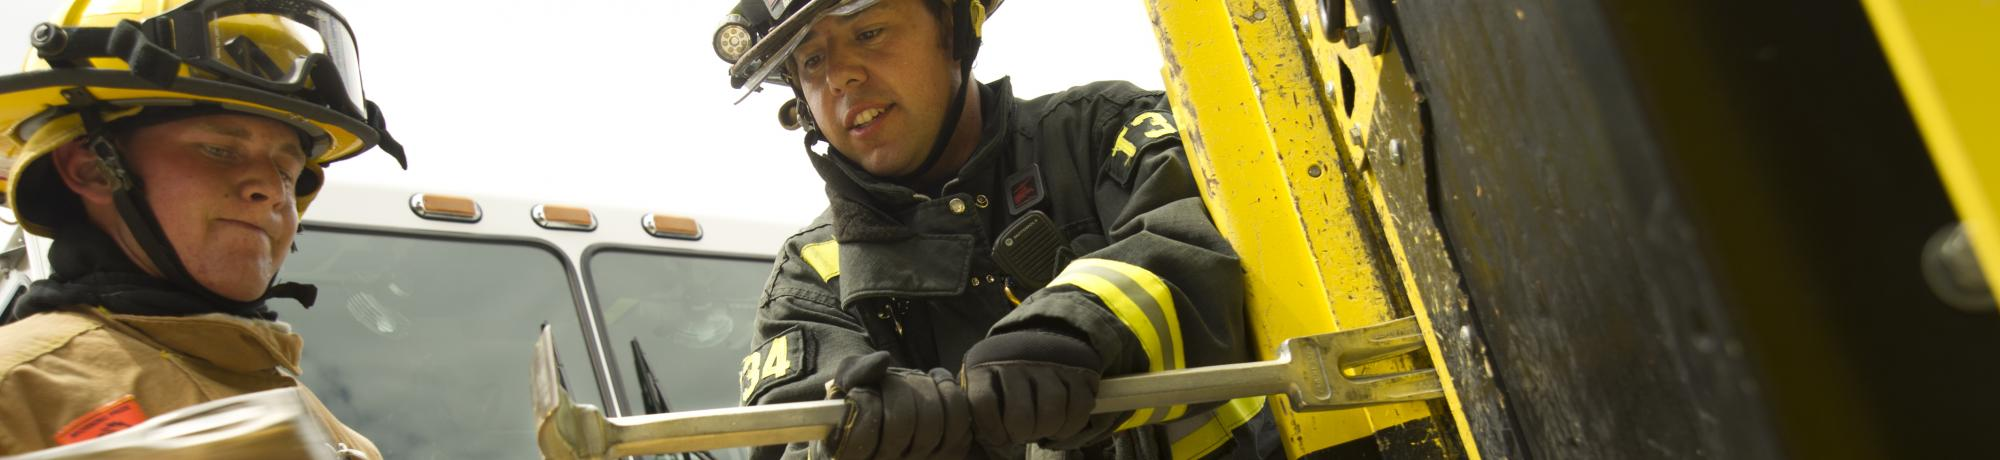 A UC Davis student firefighter learns how to force open a door from a career firefighter.